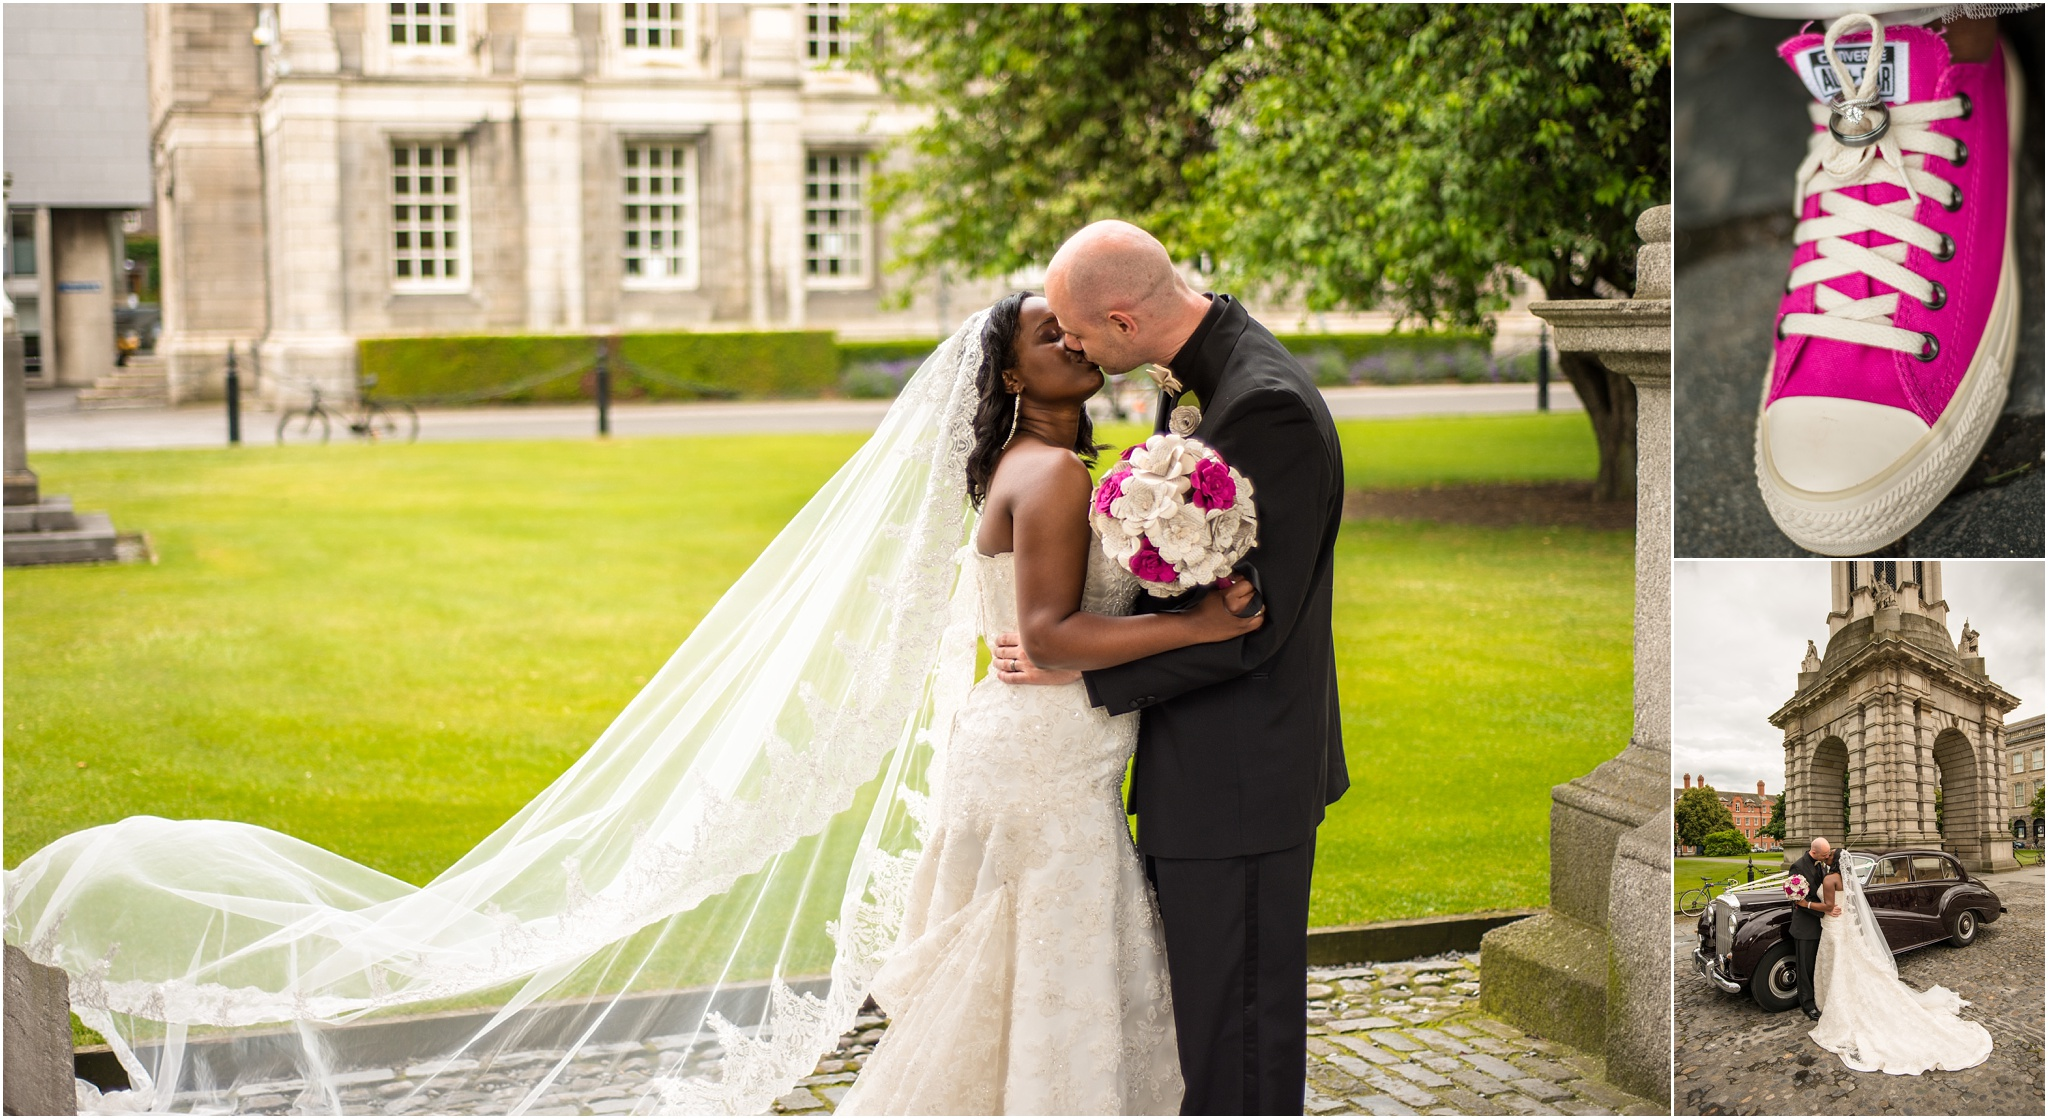 Greg Smit Photography Dublin Ireland wedding photographer Thomas Prior Hall 22